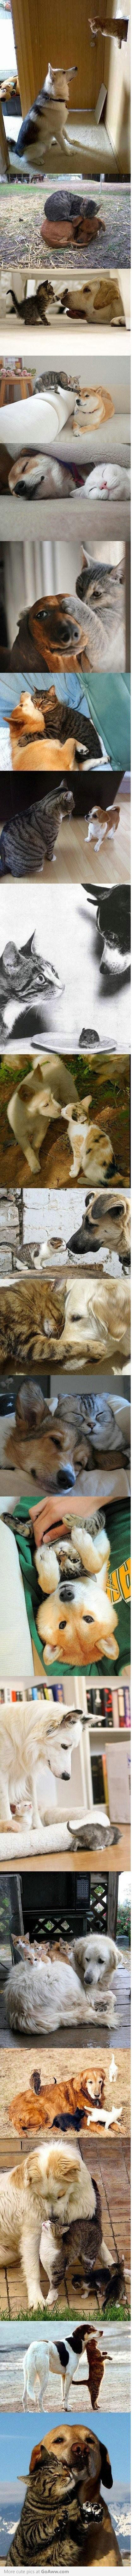 who says dogs and cats can't get along.          =^..^=